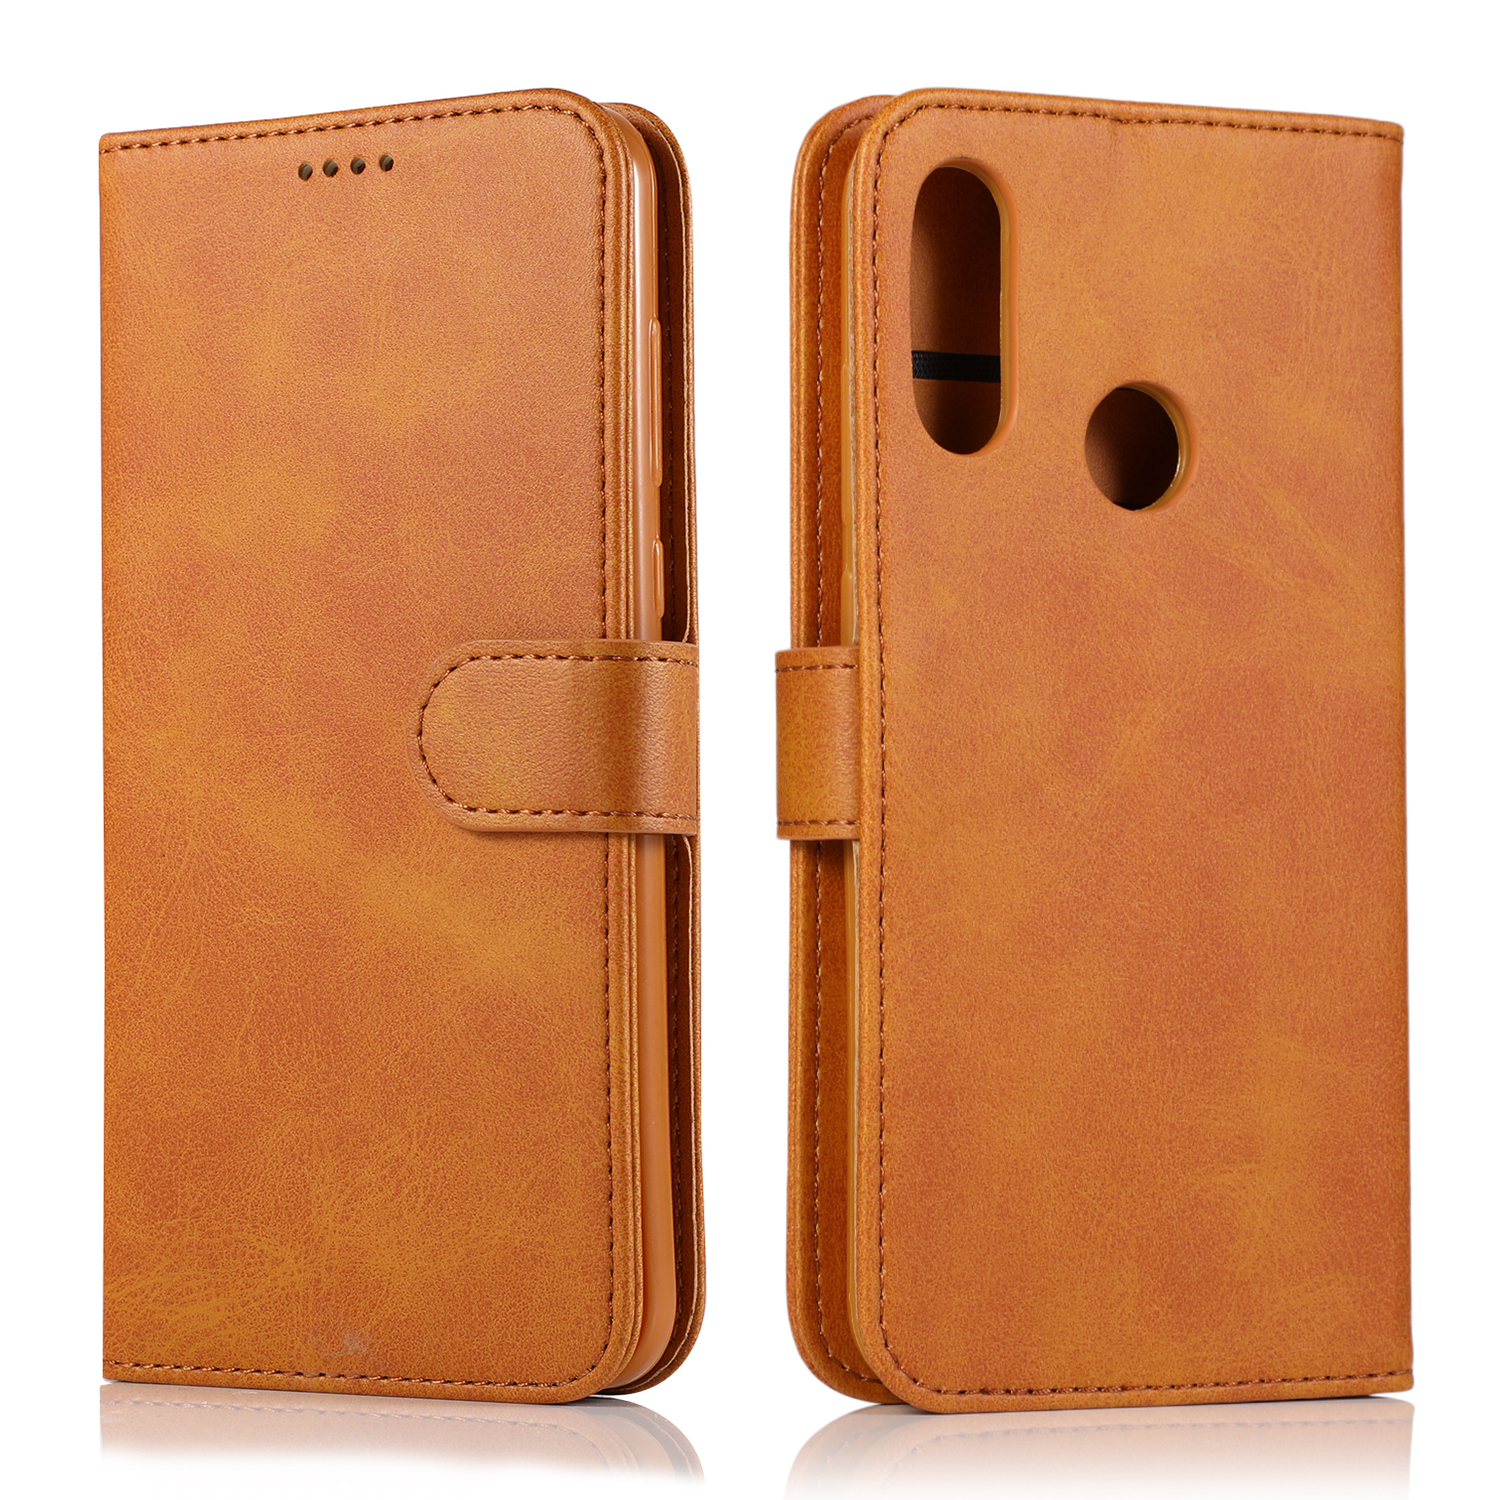 <font><b>Leather</b></font> <font><b>Case</b></font> For Honor 8A 7A 7C 9X Pro 8S 10i 10 Lite 8X 8C Flip Book <font><b>Case</b></font> On For <font><b>Huawei</b></font> Y6 Y7 Prime <font><b>Y5</b></font> 2019 <font><b>2018</b></font> P30 P20 Lite image